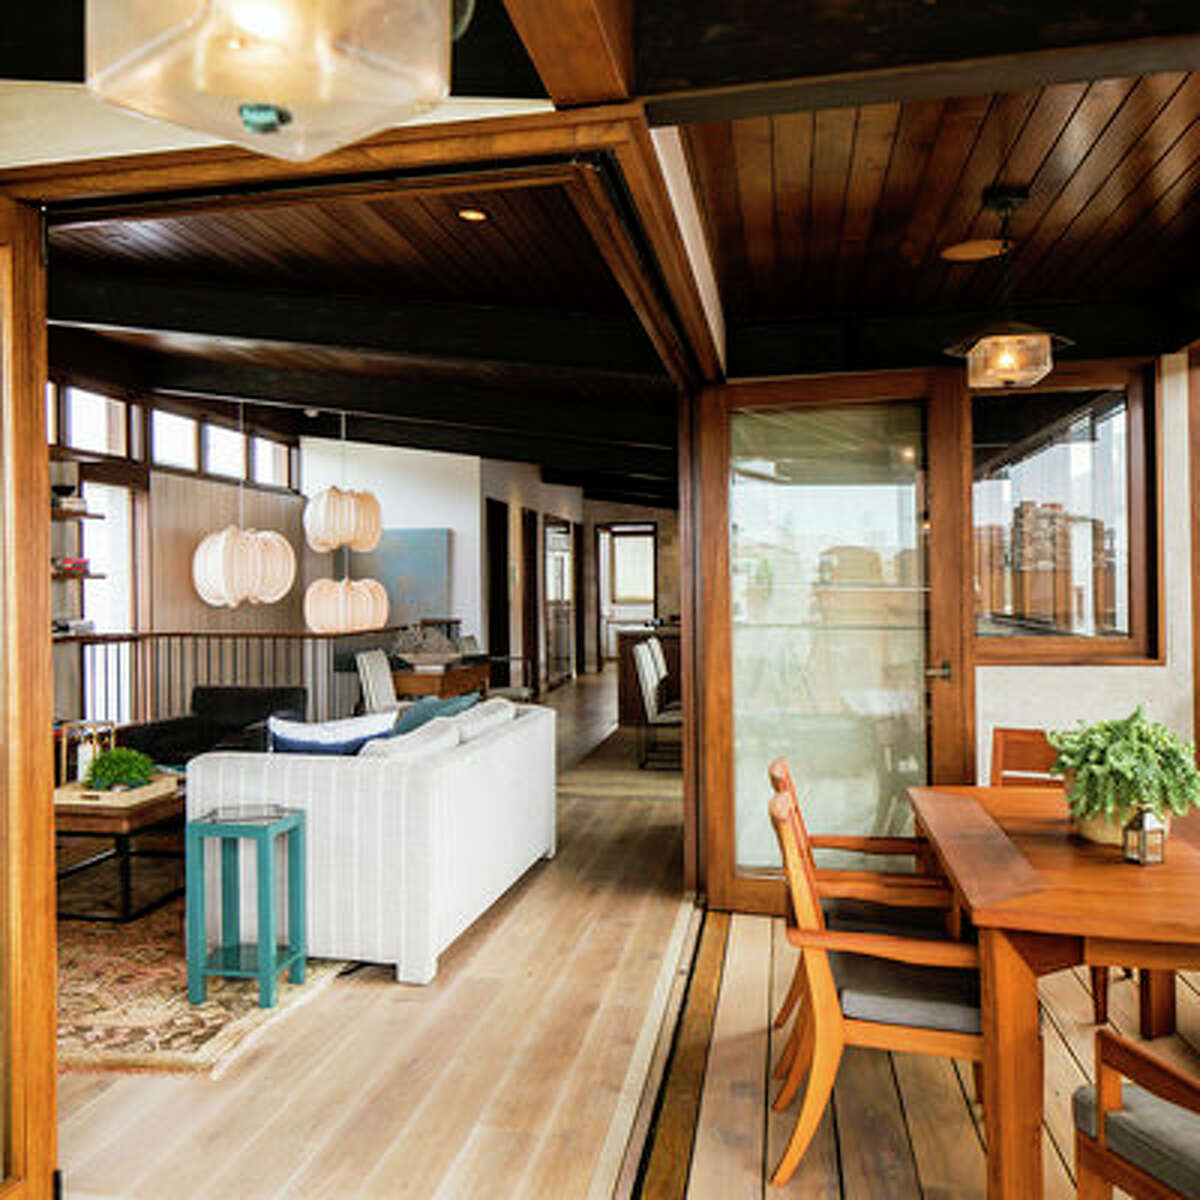 Treat the outside like the inside With the doors to the deck open and folded back against the exterior walls, it feels like the living room and deck are one. The homeowner chose outdoor furniture that completely meshes with what's inside.